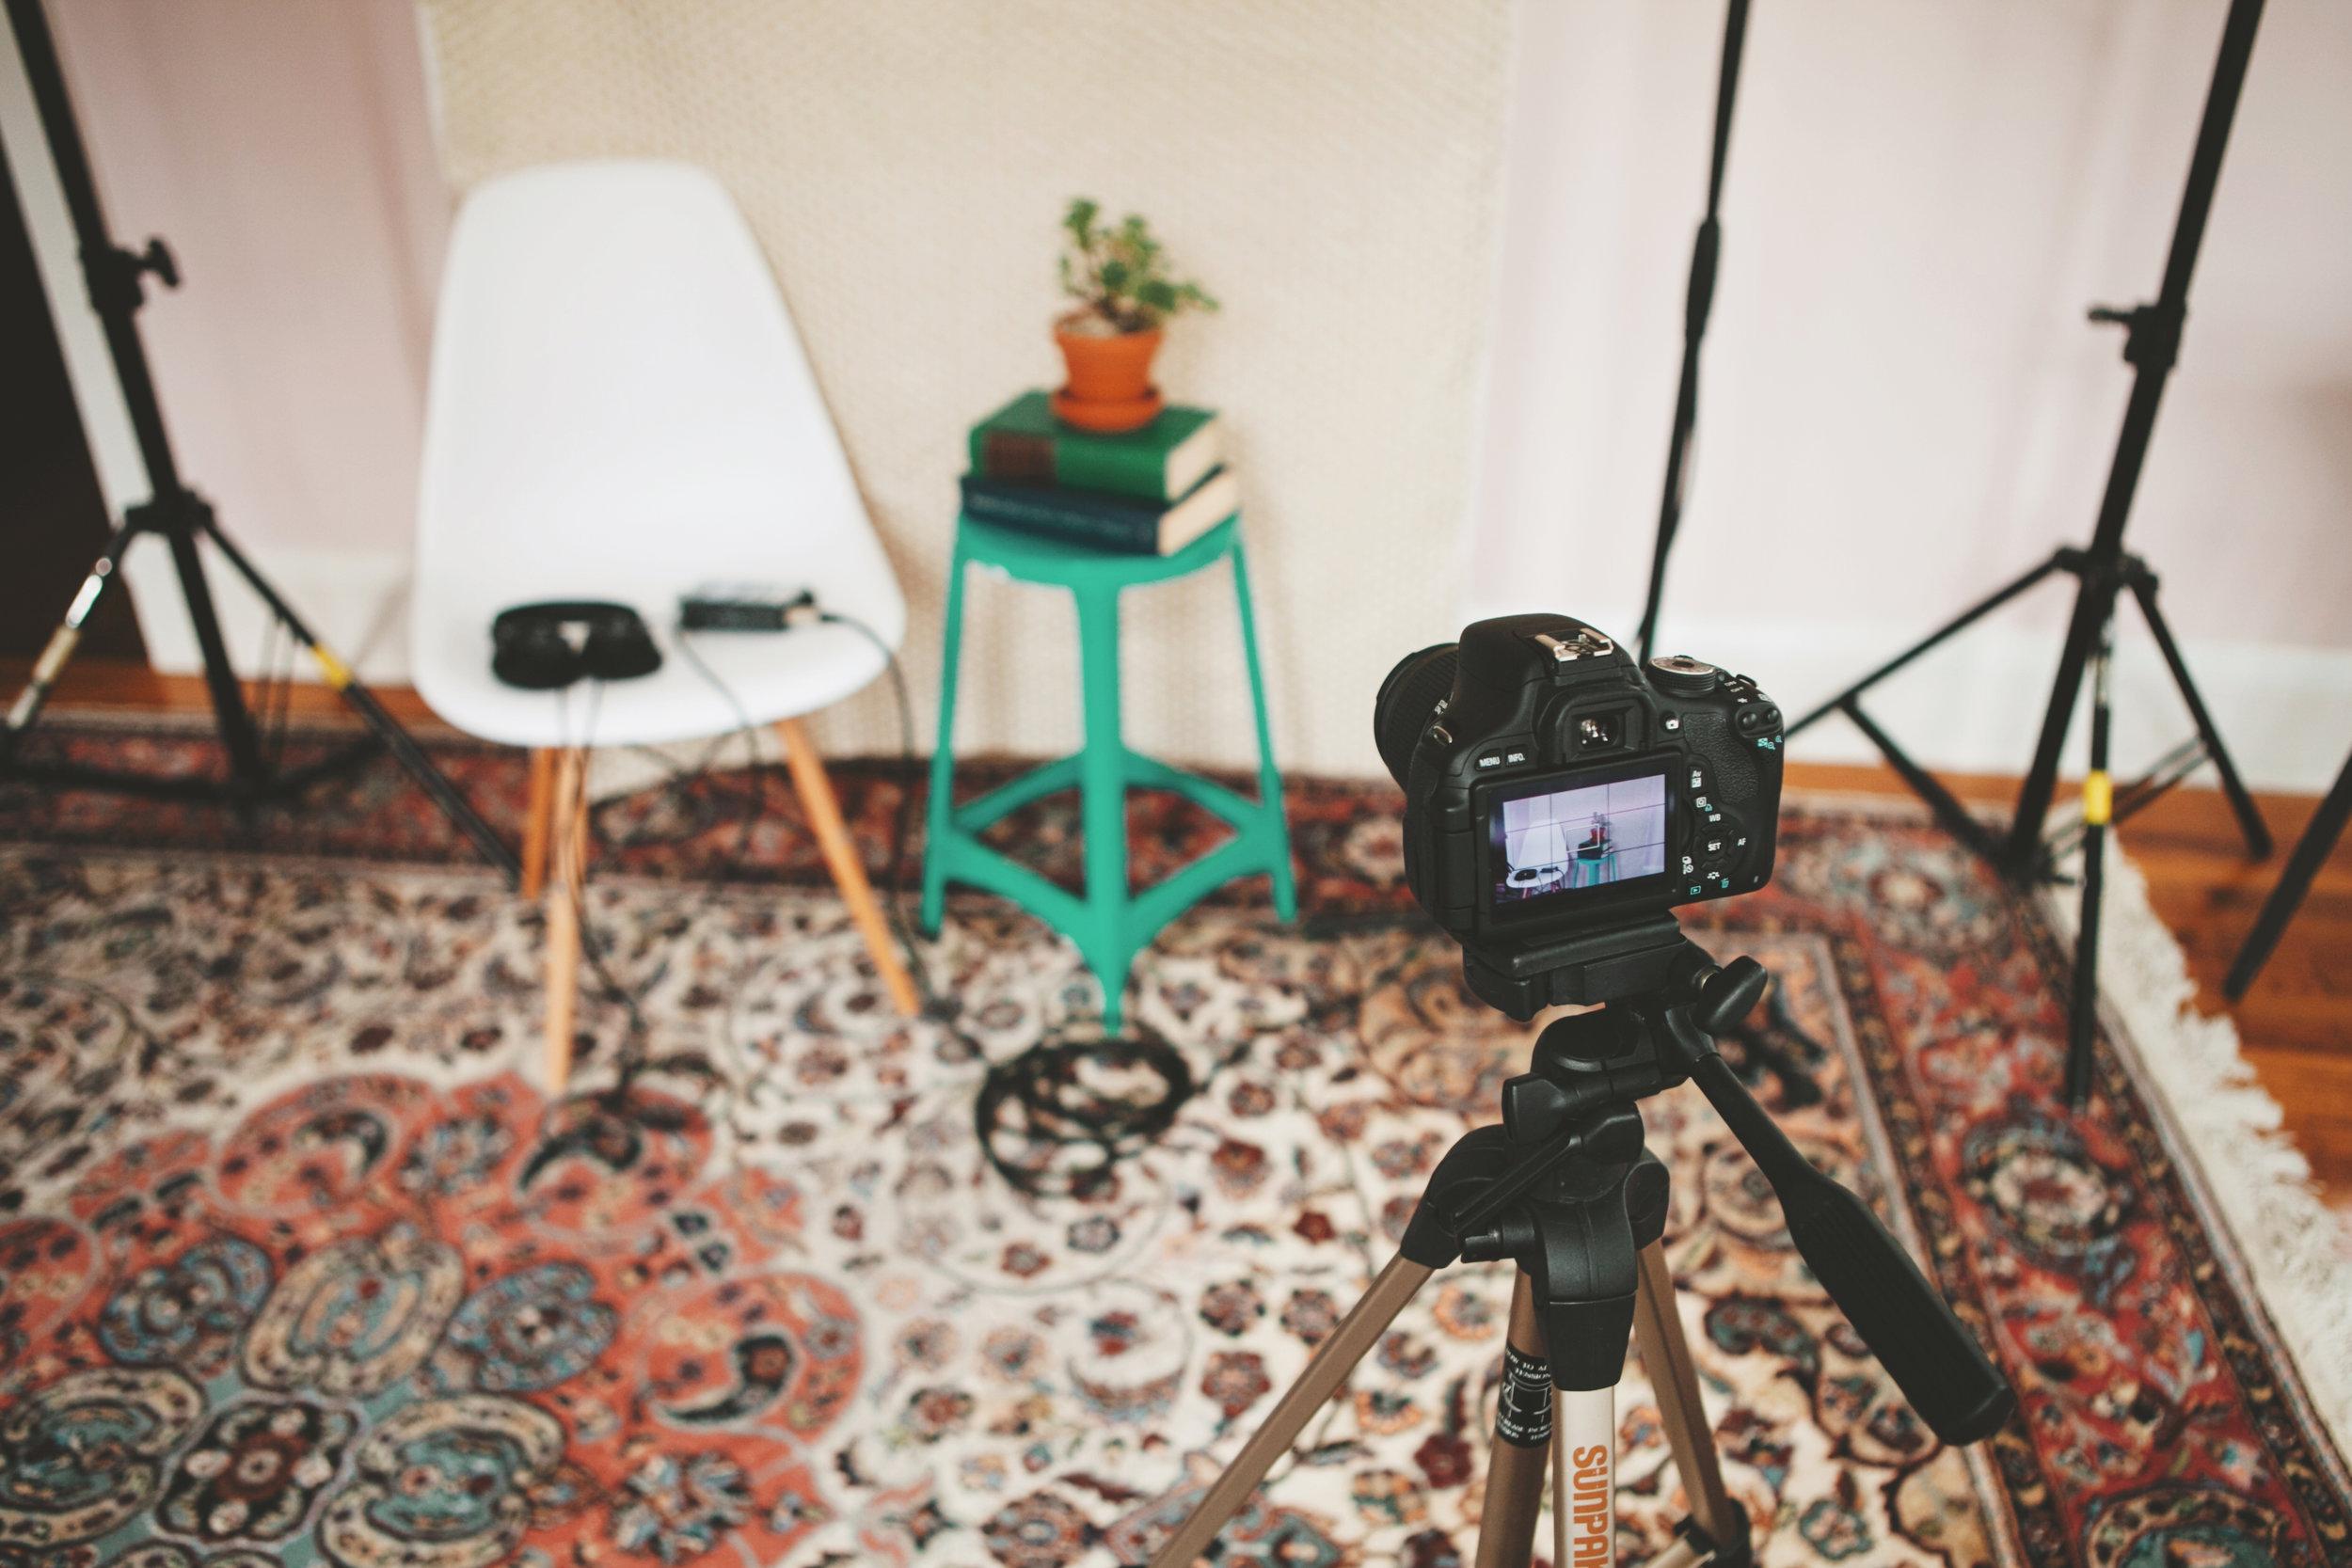 A video set with a Canon camera and backdrop